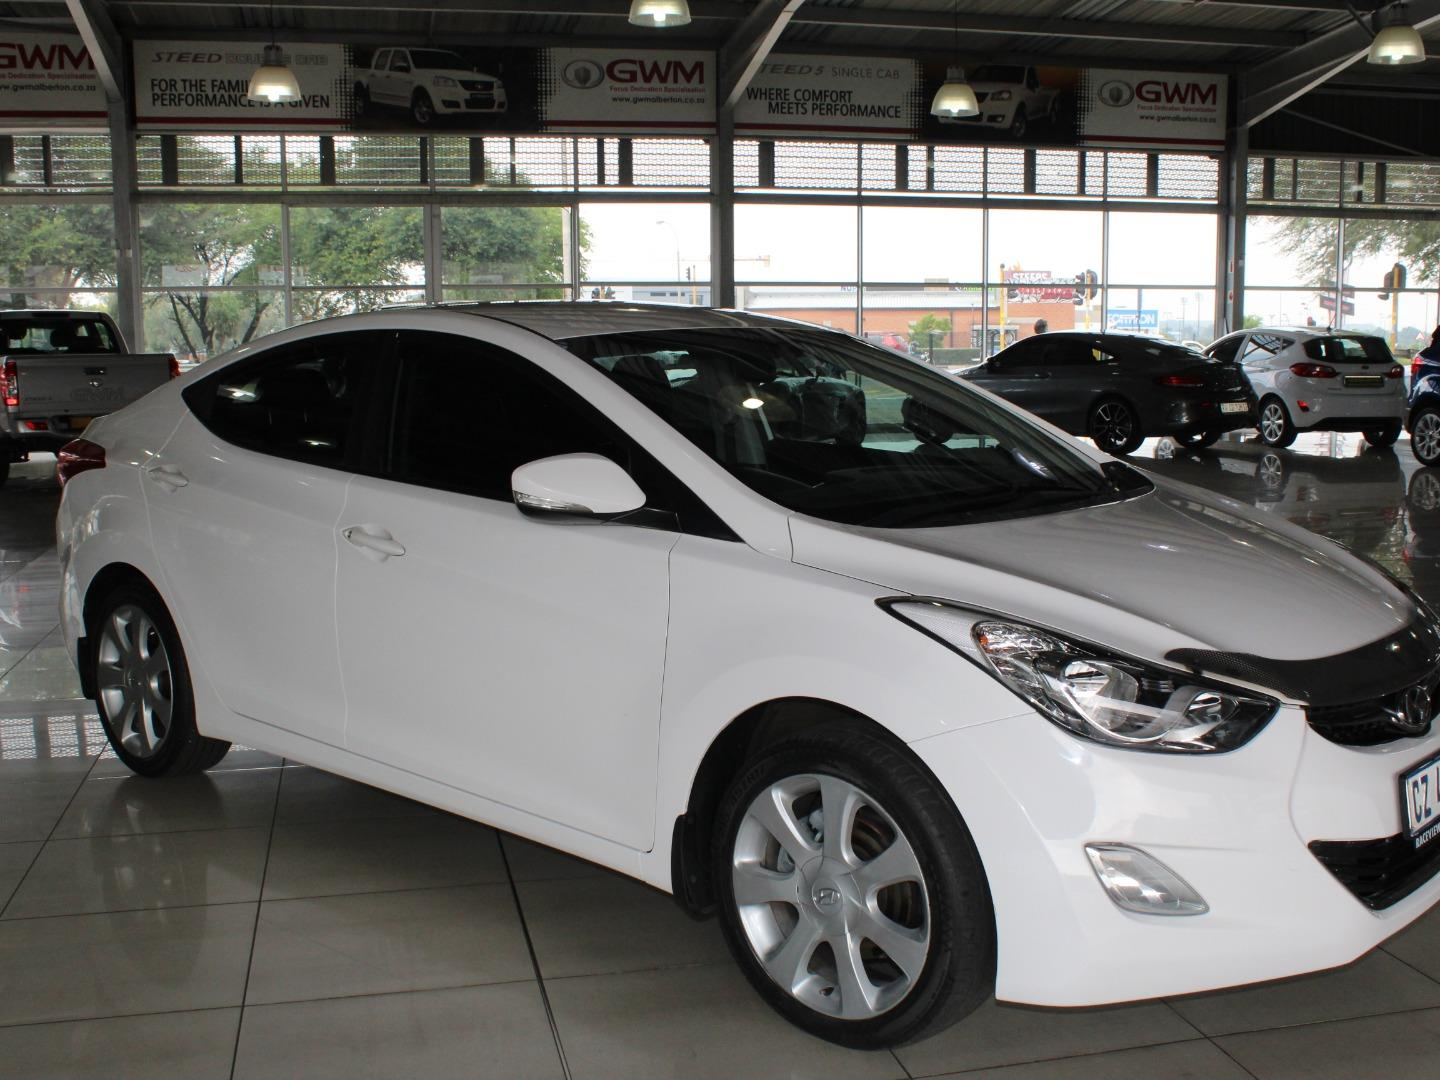 2014 Hyundai Elantra 1.8 Executive